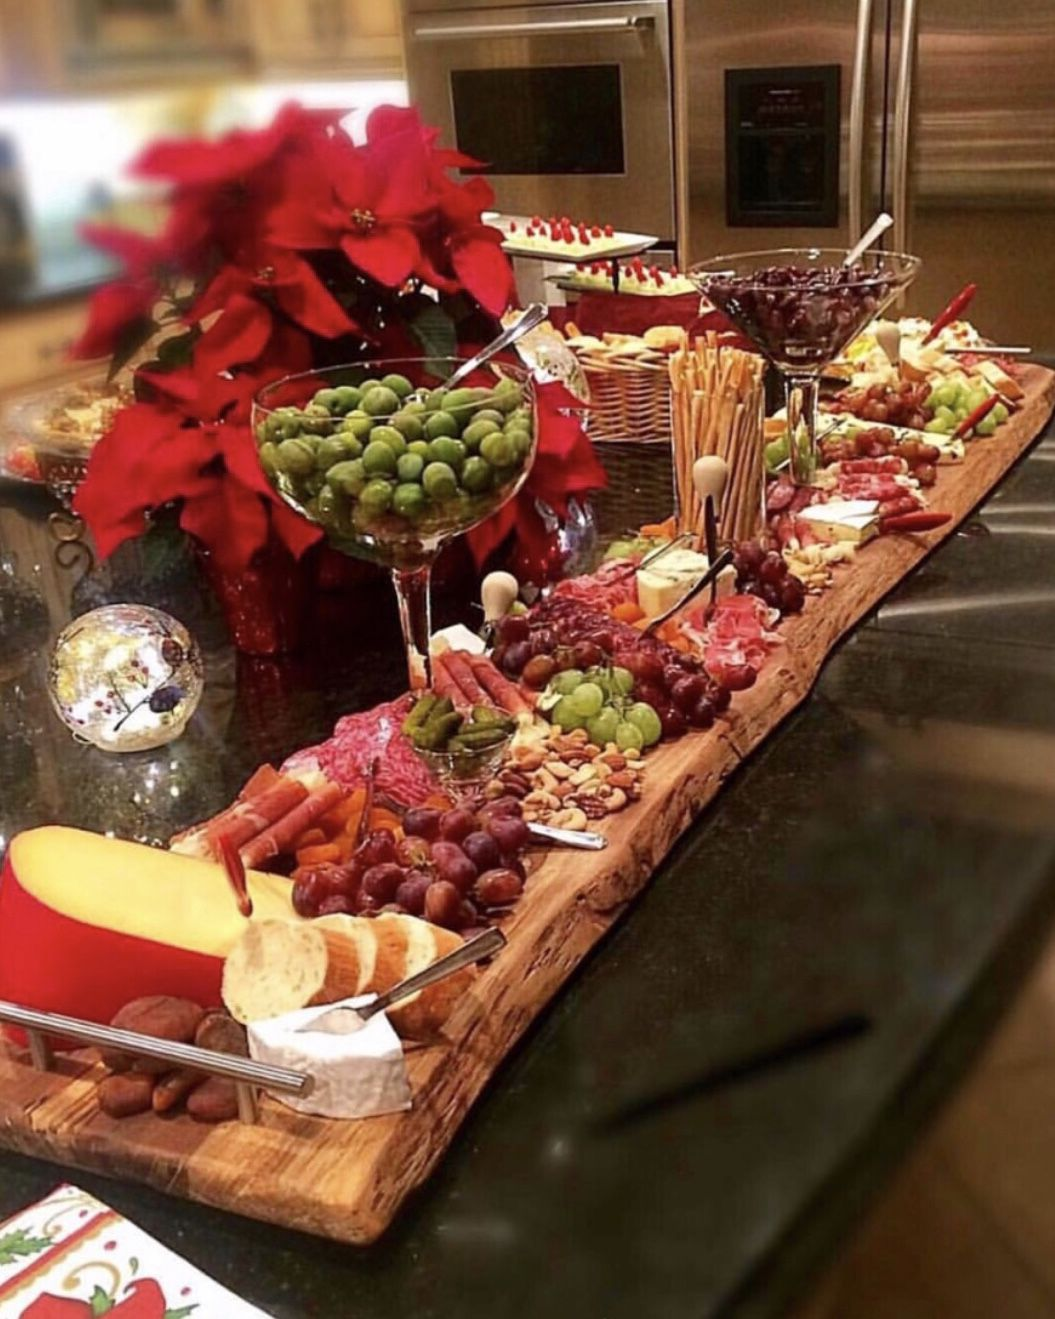 Charcuterie Grazing Cheese Antipasti Boards By Geppettaboards Charcuterie And Cheese Board Food Displays Party Food Platters